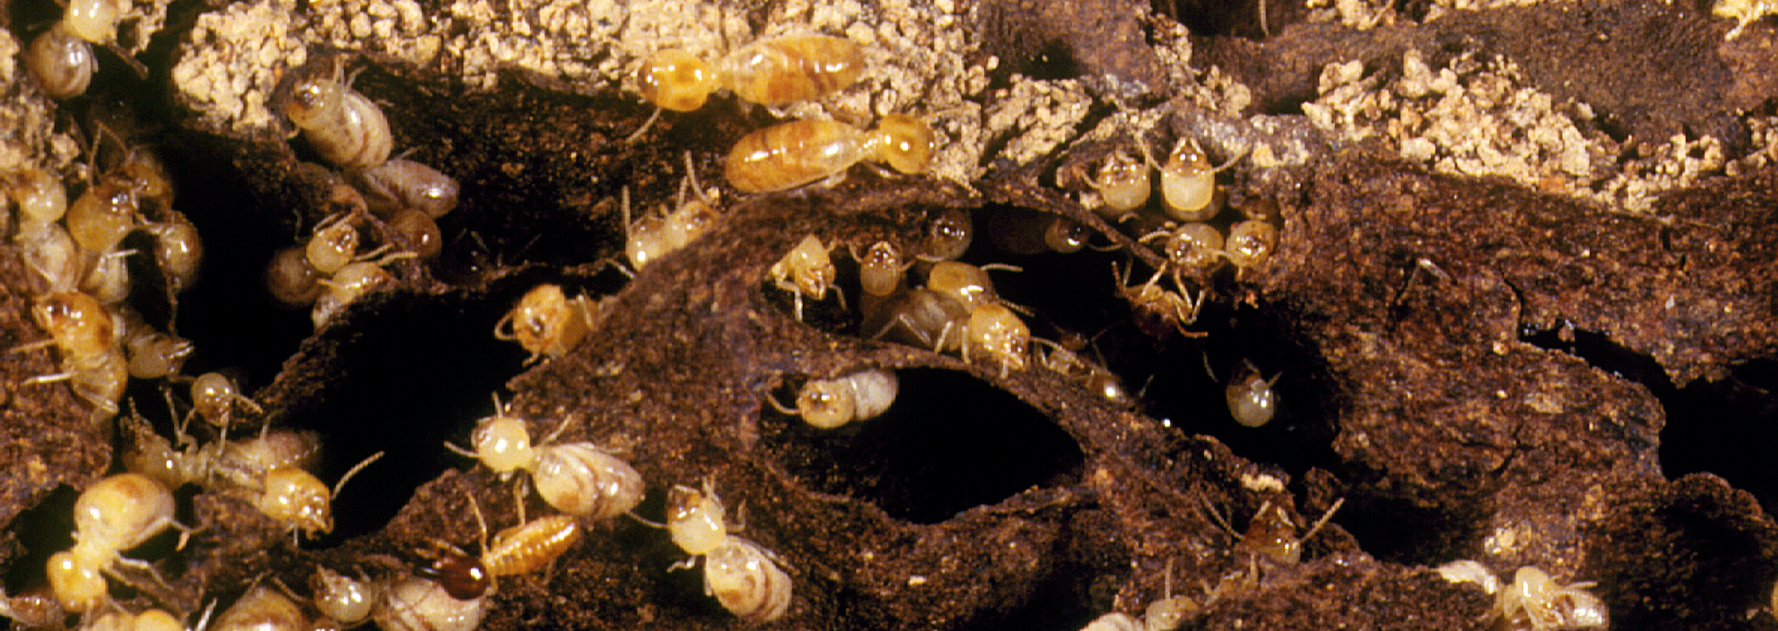 Termites attacking wood